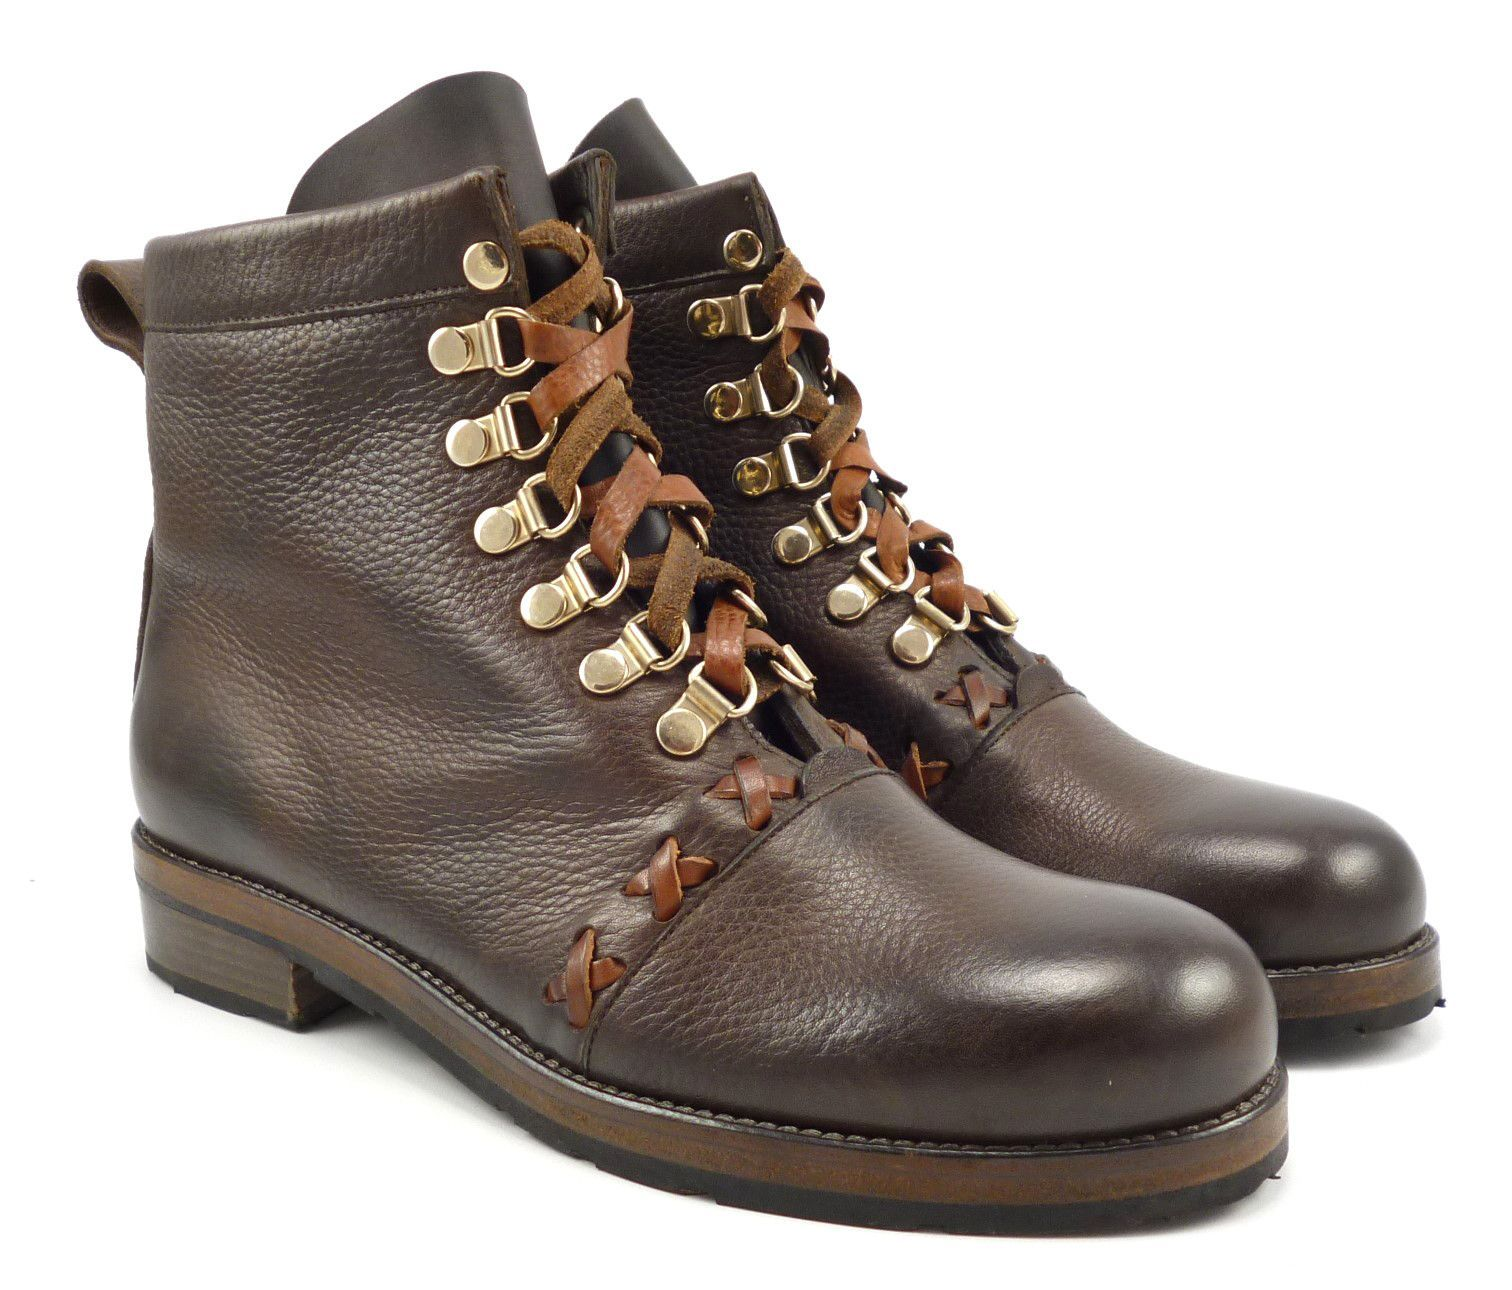 Pre-owned - Leather lace ups Ralph Lauren YqflC